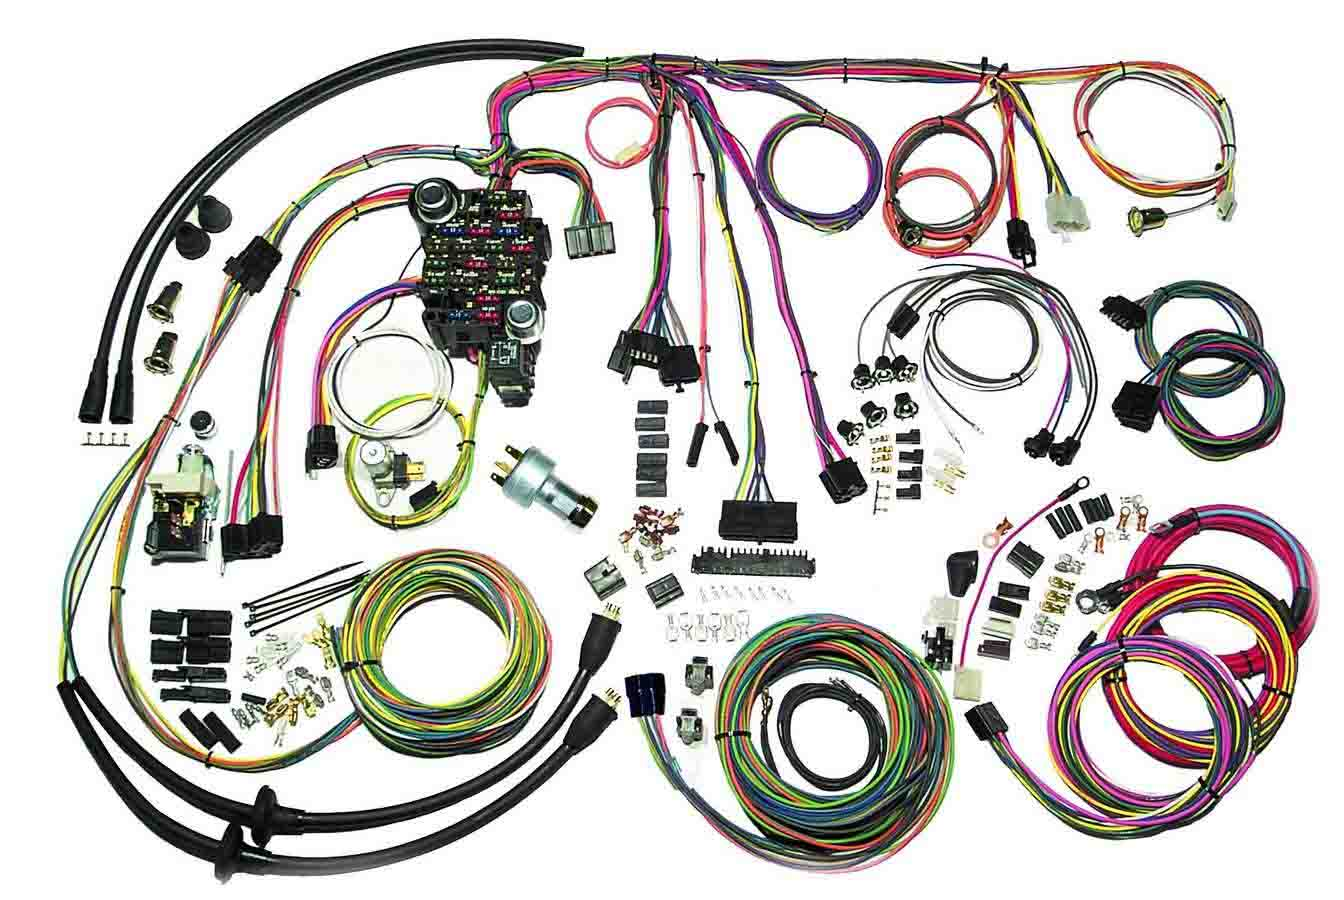 55 Chevy Wire Harness - Technical Diagrams on